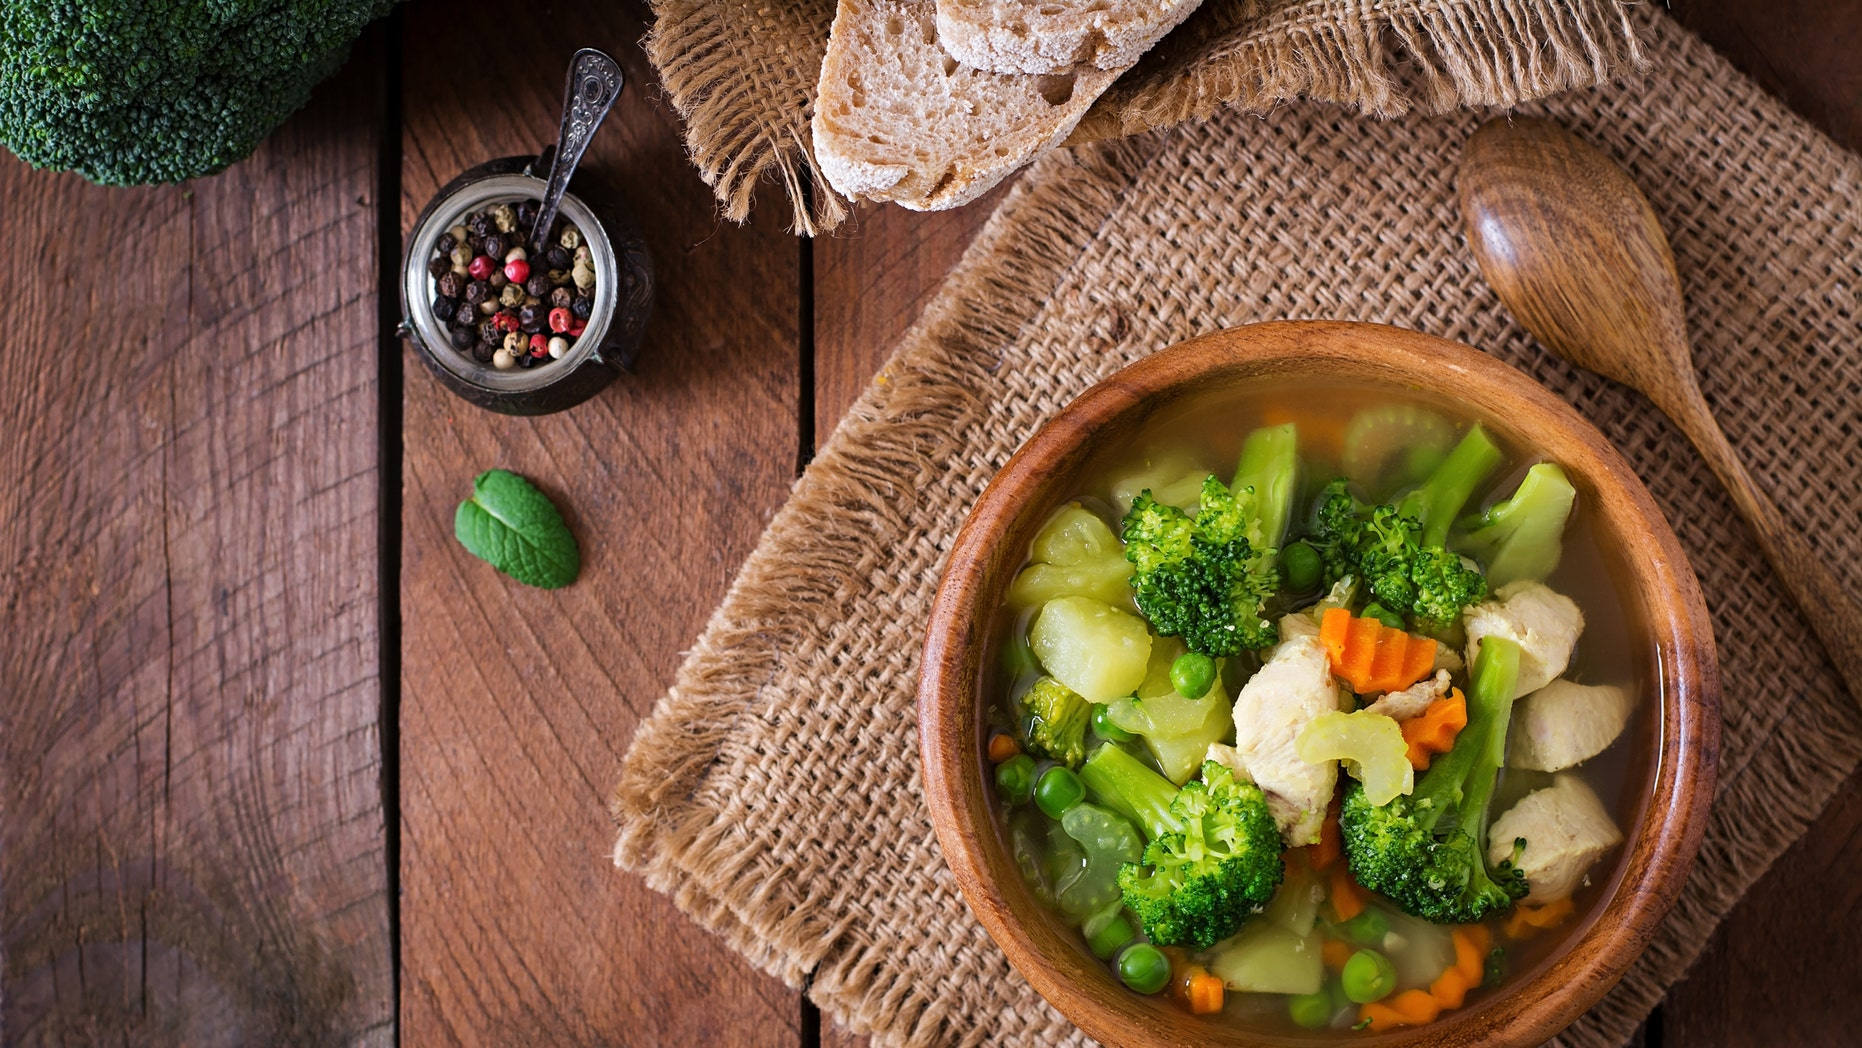 Chicken soup with broccoli, green peas, carrots and celery in  bowl on a wooden background in rustic style. Top view